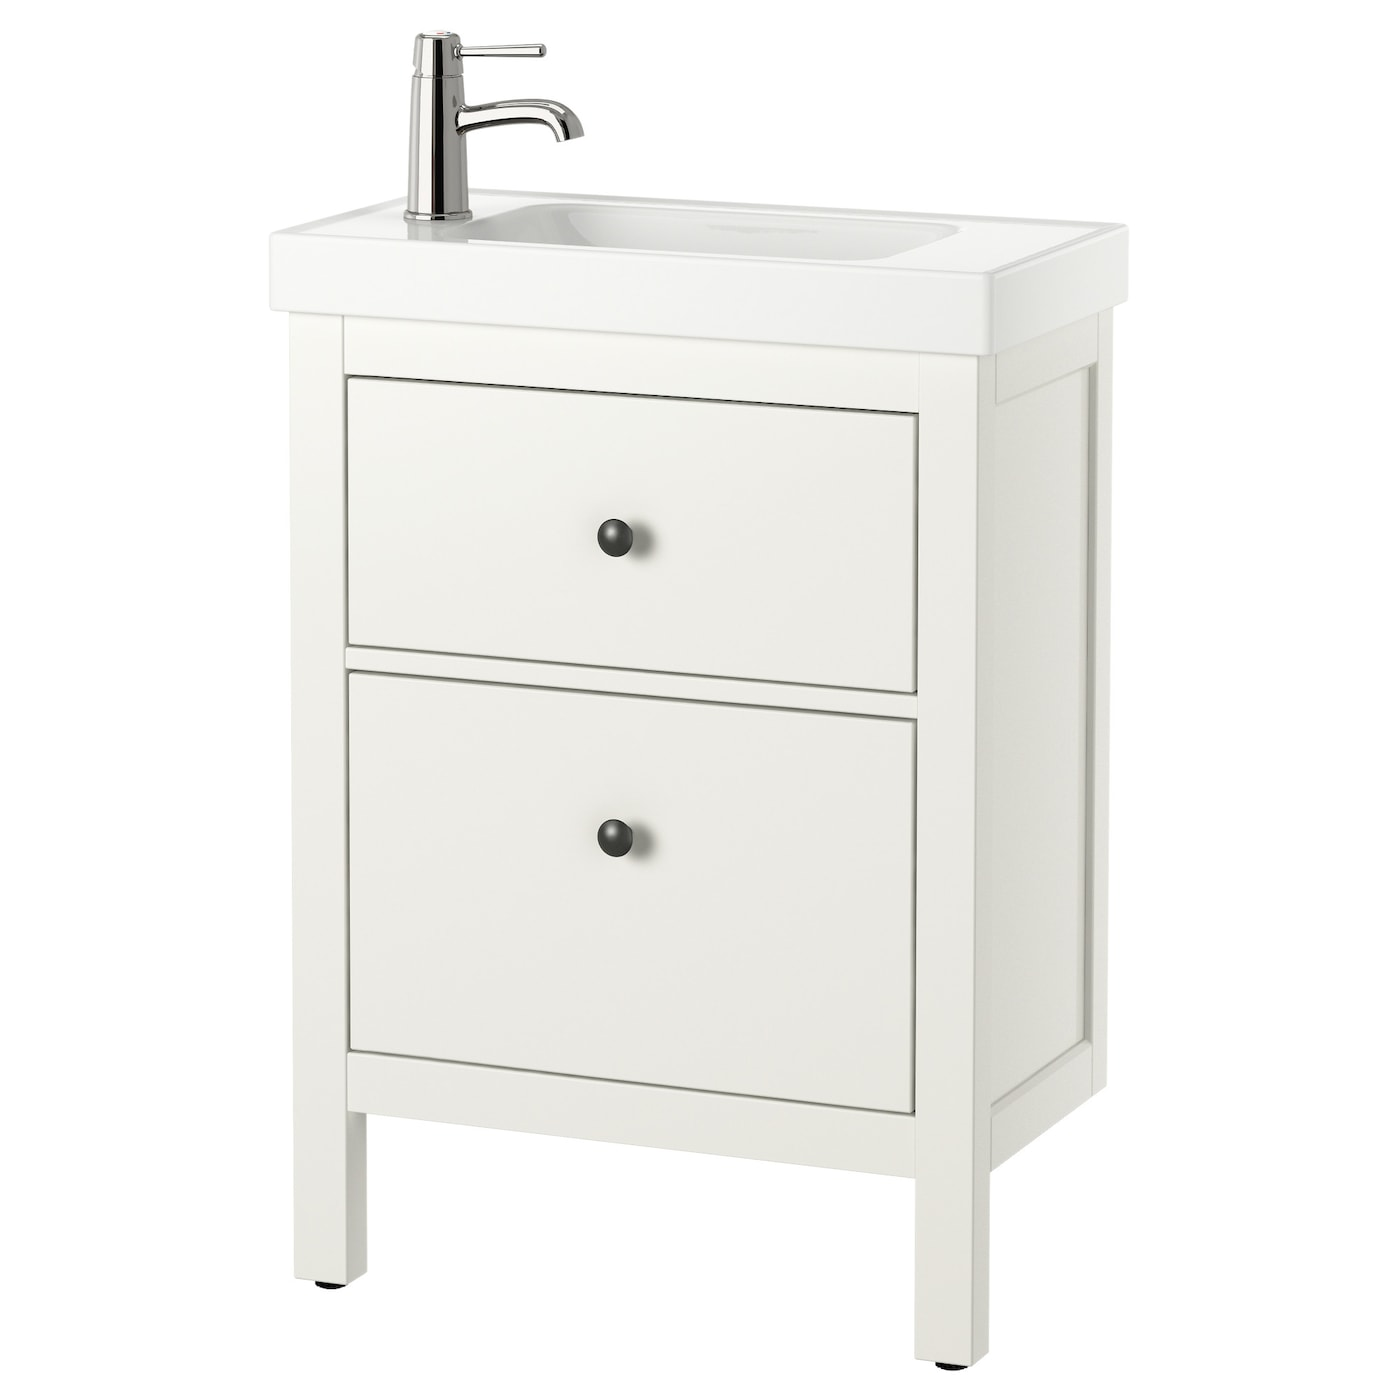 hemnes hagaviken meuble lavabo 2tir blanc 60x34x90 cm ikea. Black Bedroom Furniture Sets. Home Design Ideas